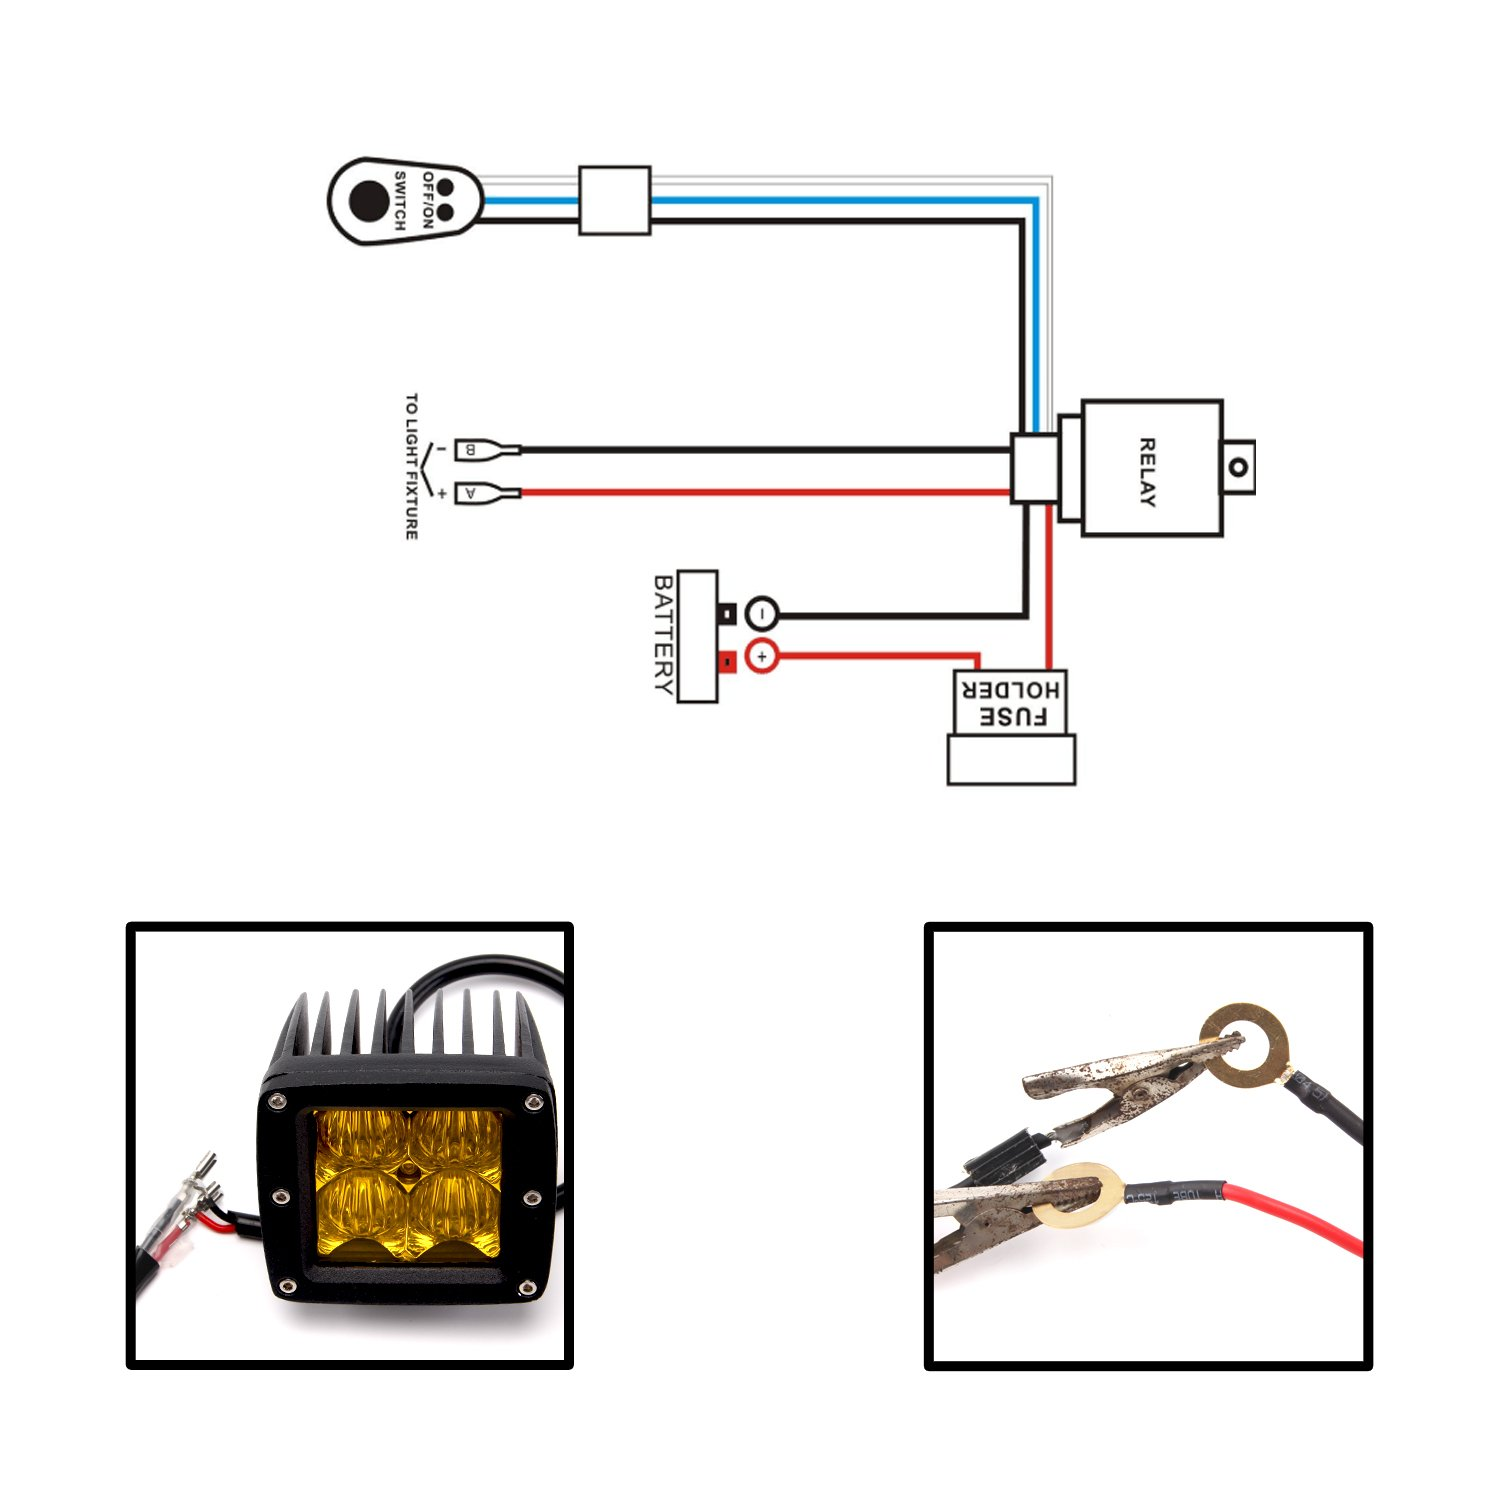 Senlips Led Light Bar Wiring Harness 10ft 12v 40a Indicator Kit Relay On Off Mouse Switch For Under 120w Offroad Driving